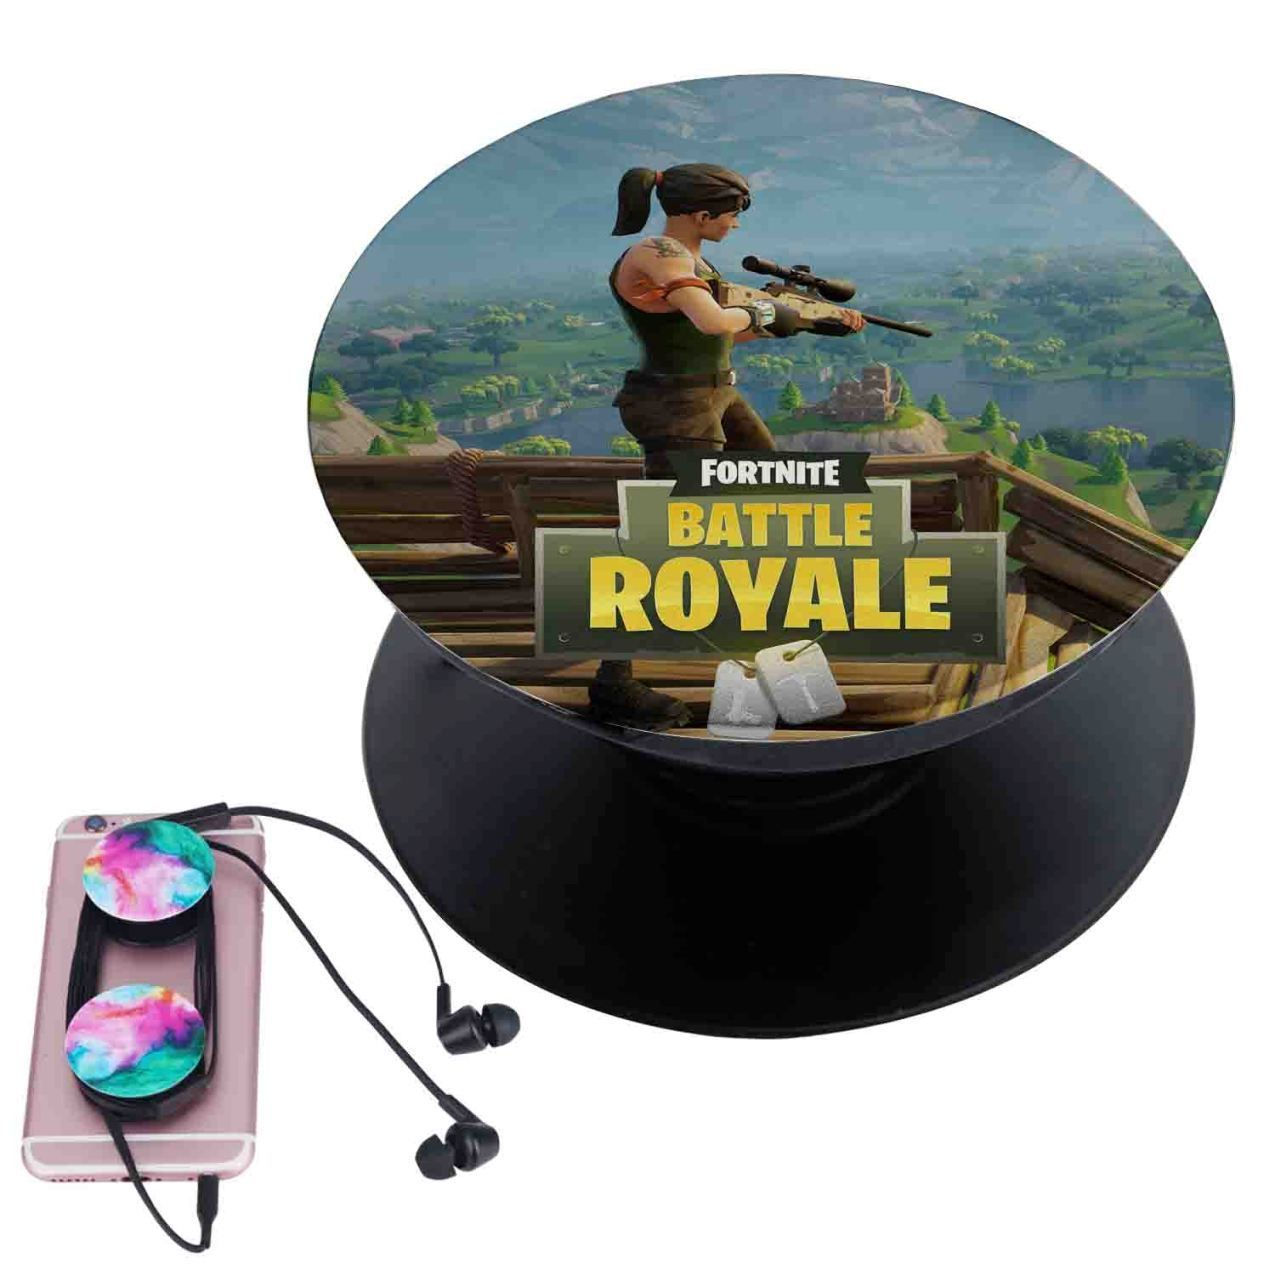 Fotos De Johnny Hallyday >> Fortnite Custom Popsocket Pop Out Grip Stand Pop Socket for iPhone Samsung LG HTC Huawei Amazon ...